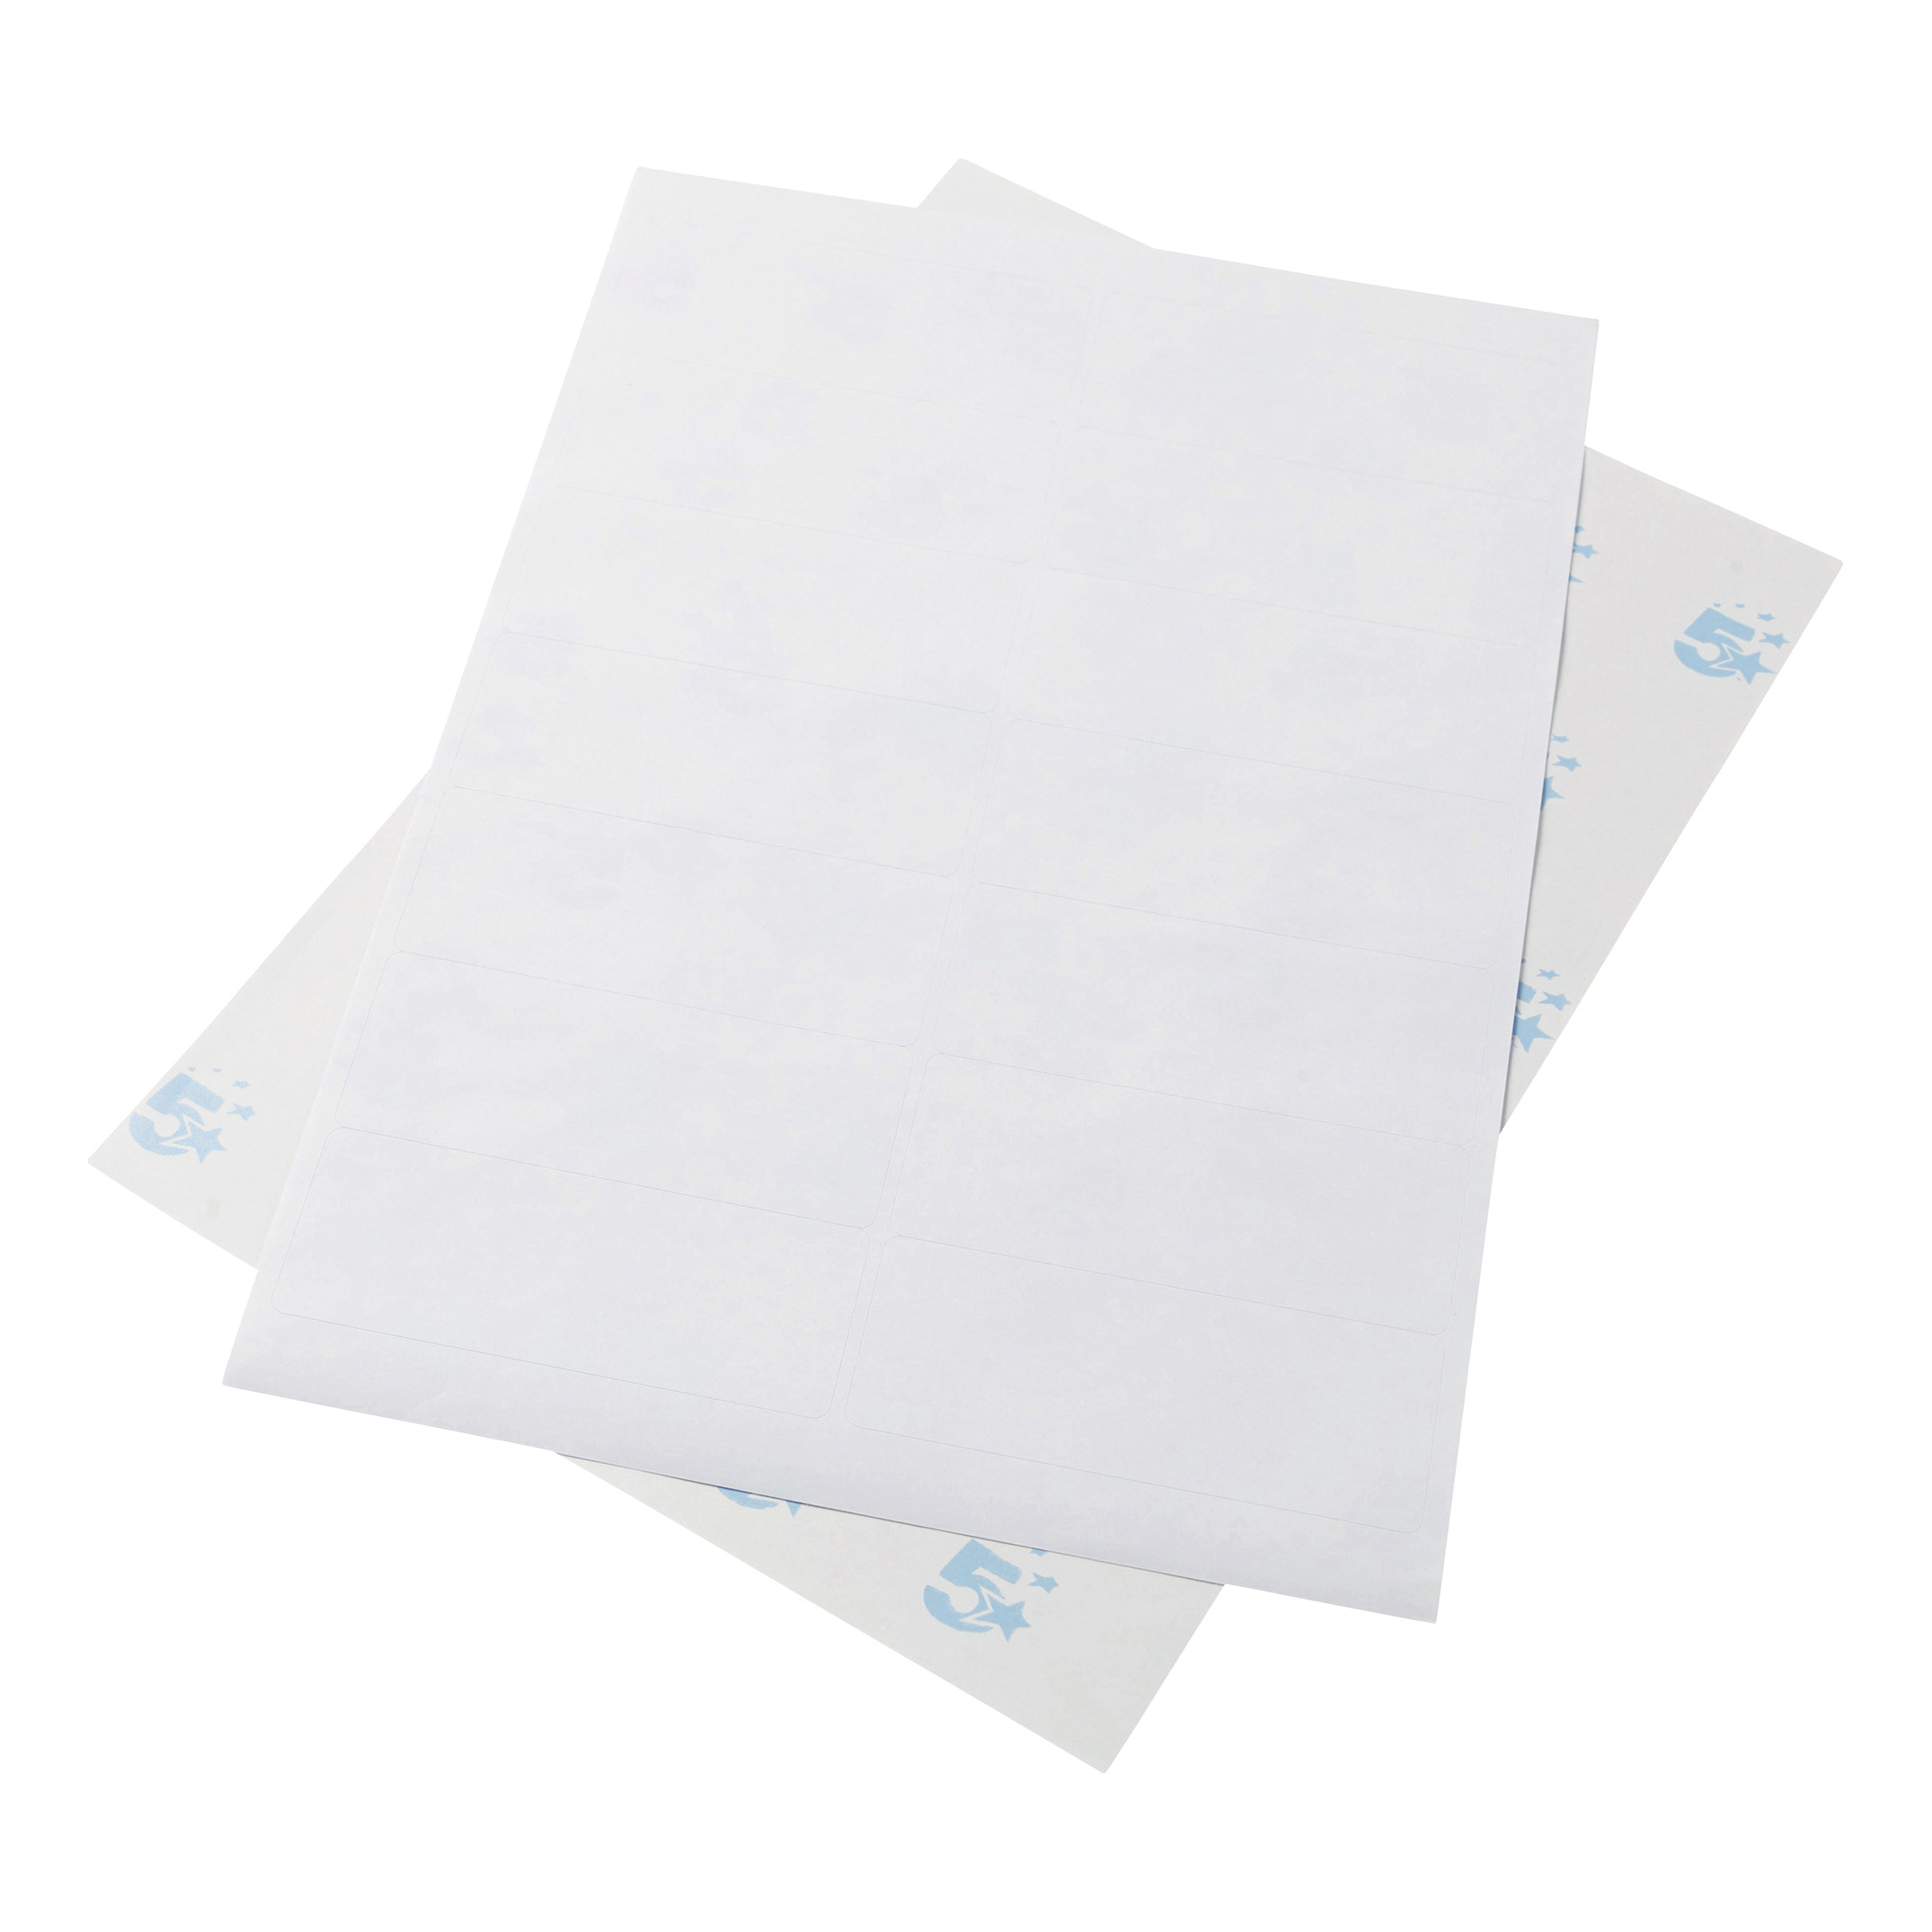 5 Star Office Multipurpose Labels Laser Copier Inkjet 14 per Sheet 99x38mm White 7000 Labels